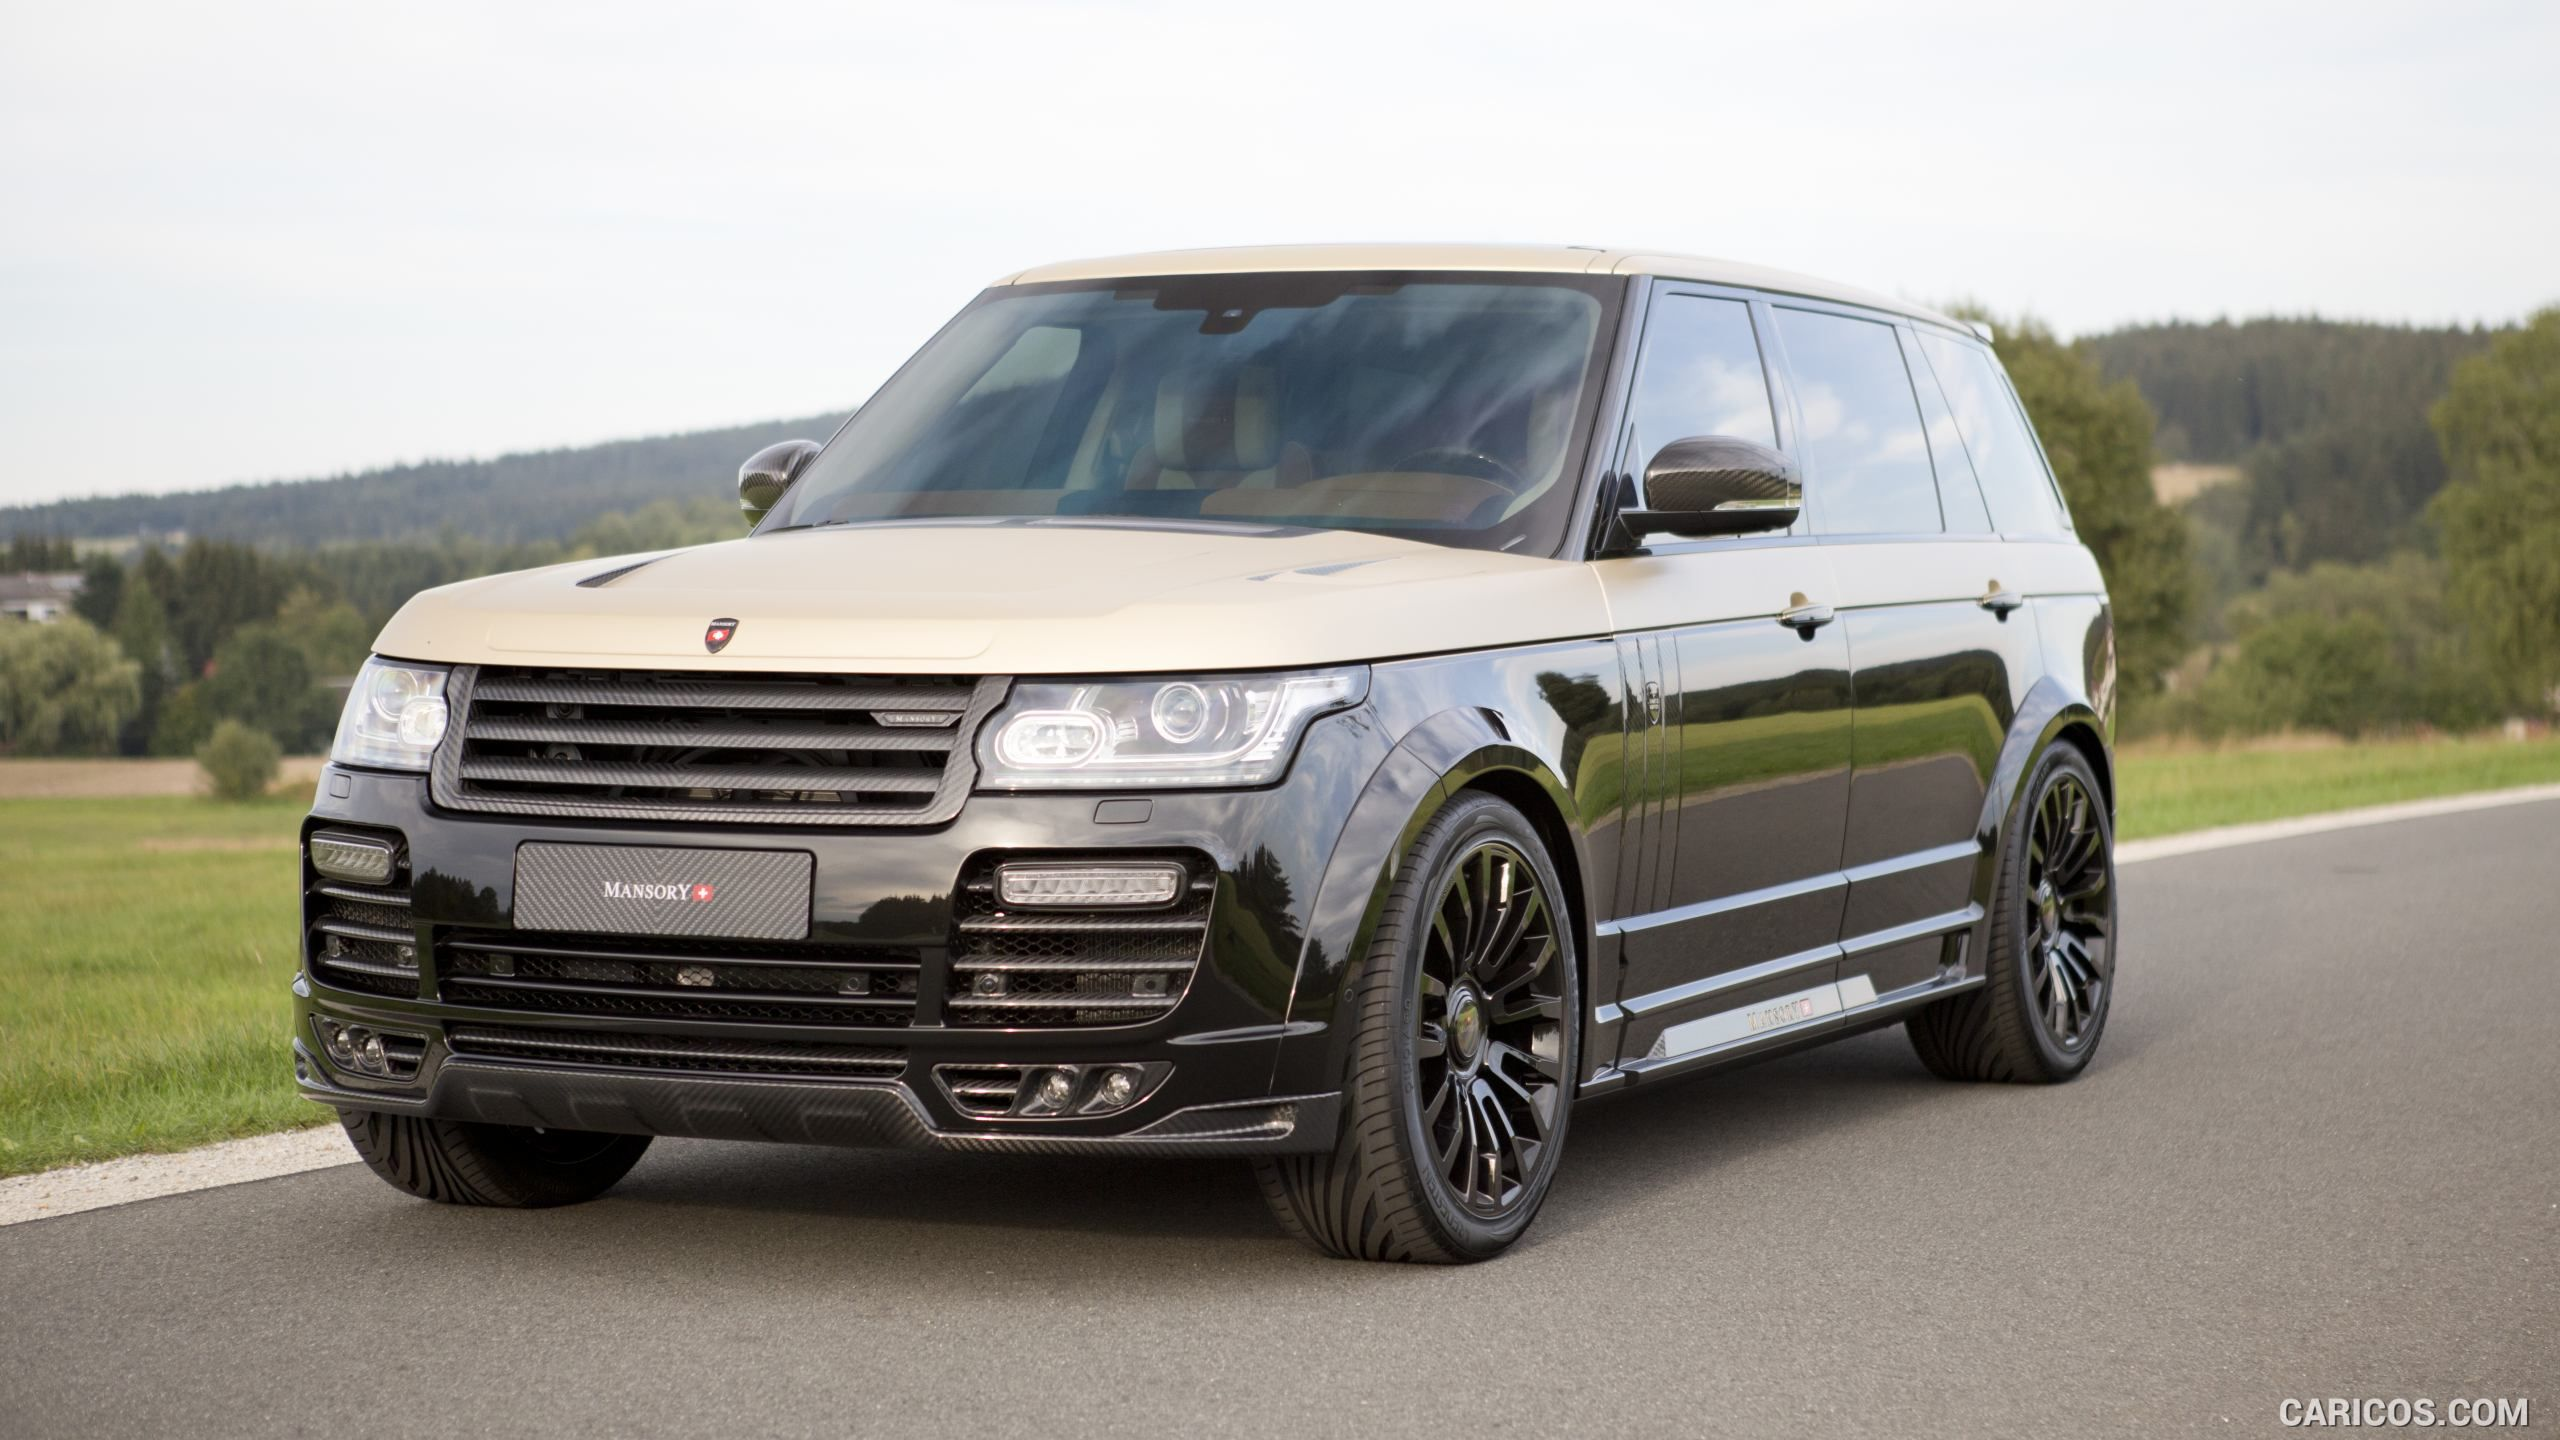 CARICOS >> MANSORY Range Rover Autobiography Extended (2016) >> LINK + 12  fotos.